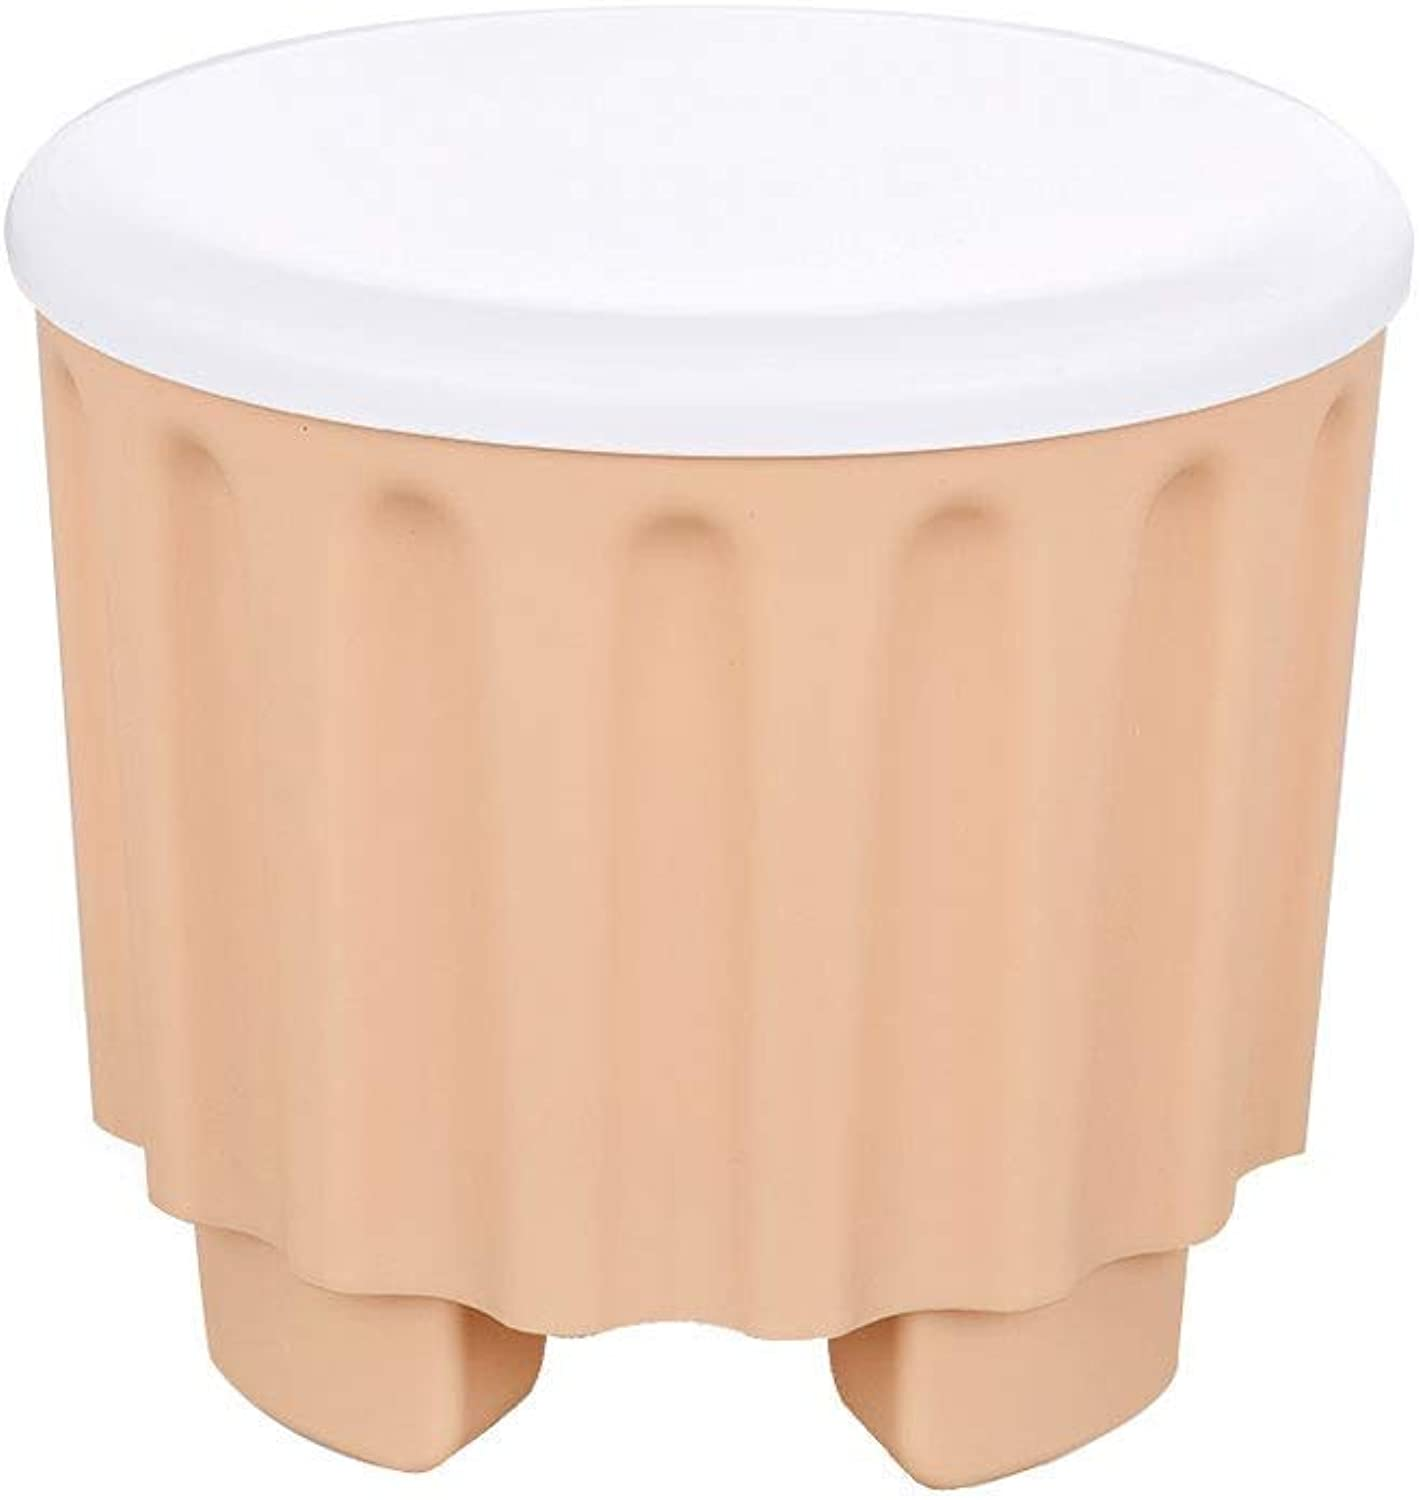 Storage Stool Small Stool Storage Box Plastic Change shoes Bench Sofa Stool JINRONG (color   Tan)